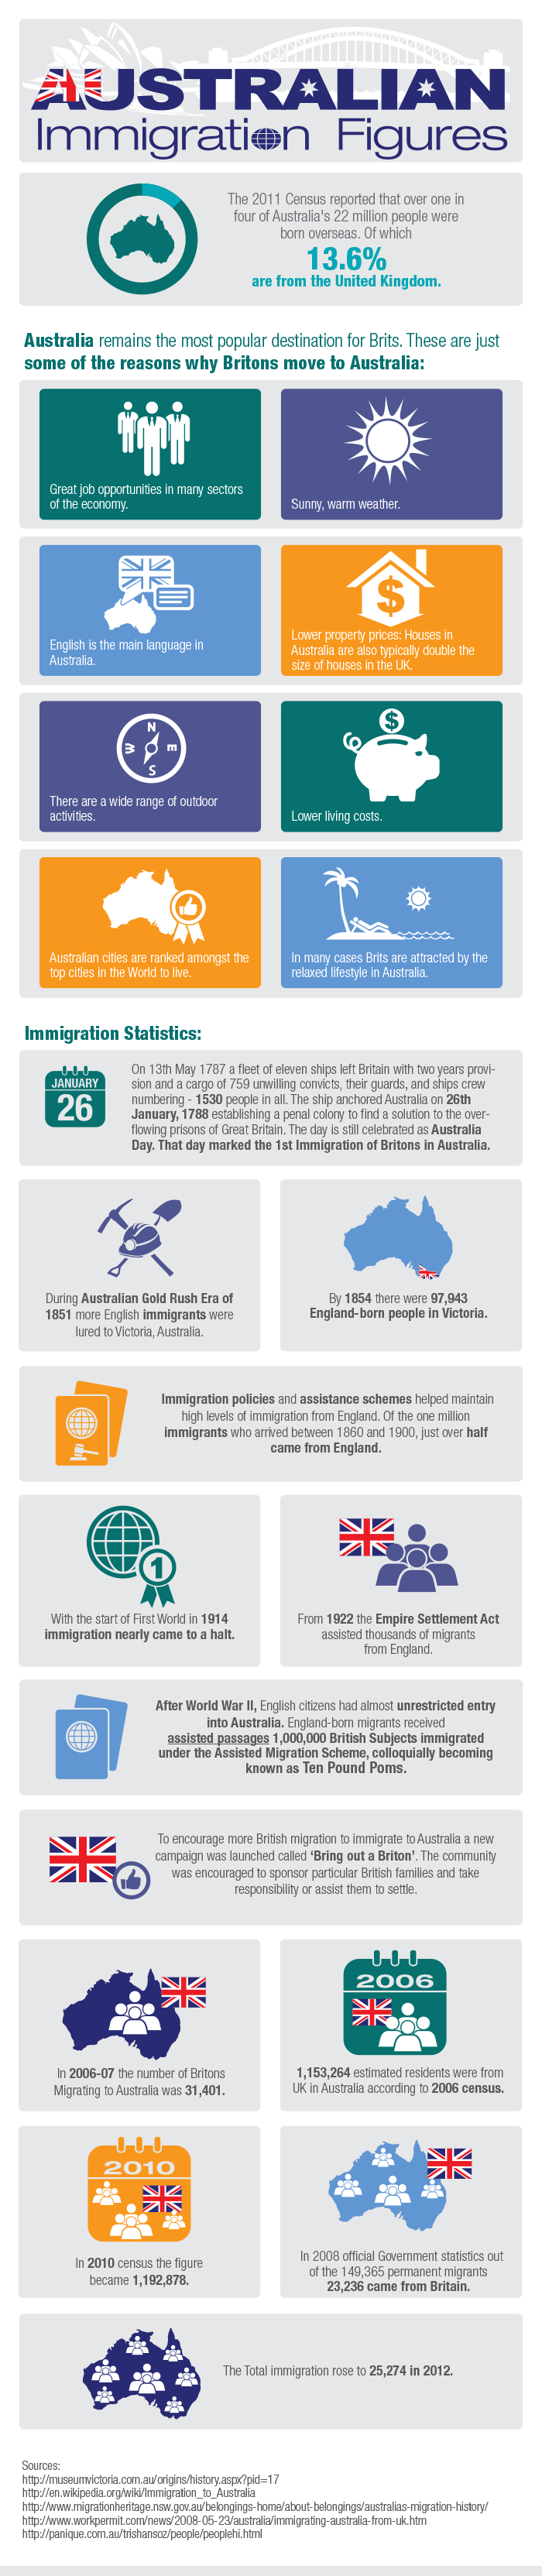 Australian Immigration Figures